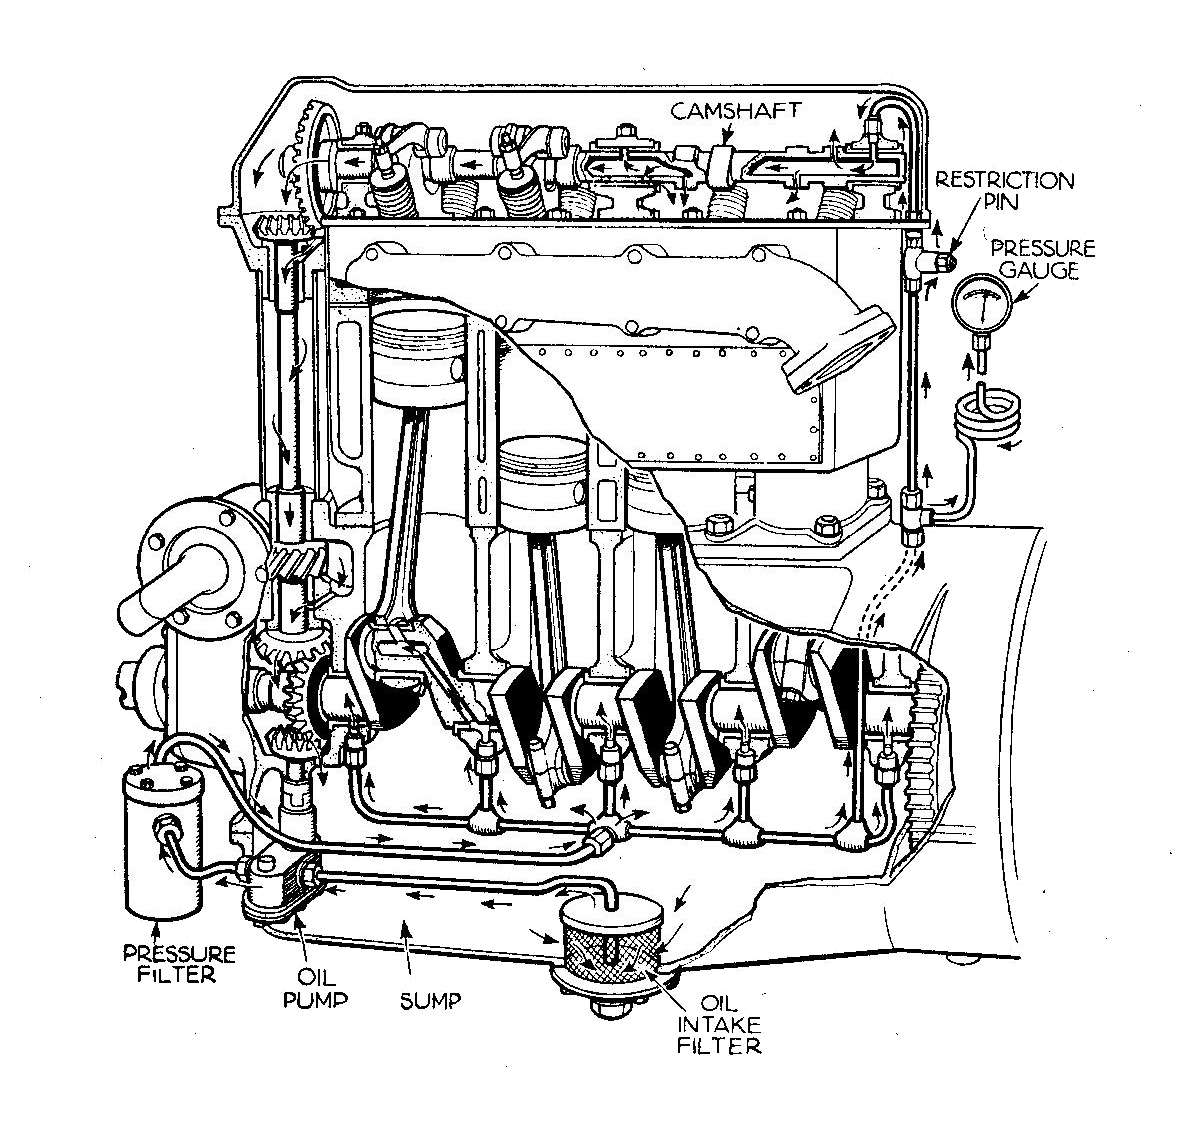 Oil Pump Internal Combustion Engine Wikipedia Toyota 22r Diagram Water Get Free Image About Wiring